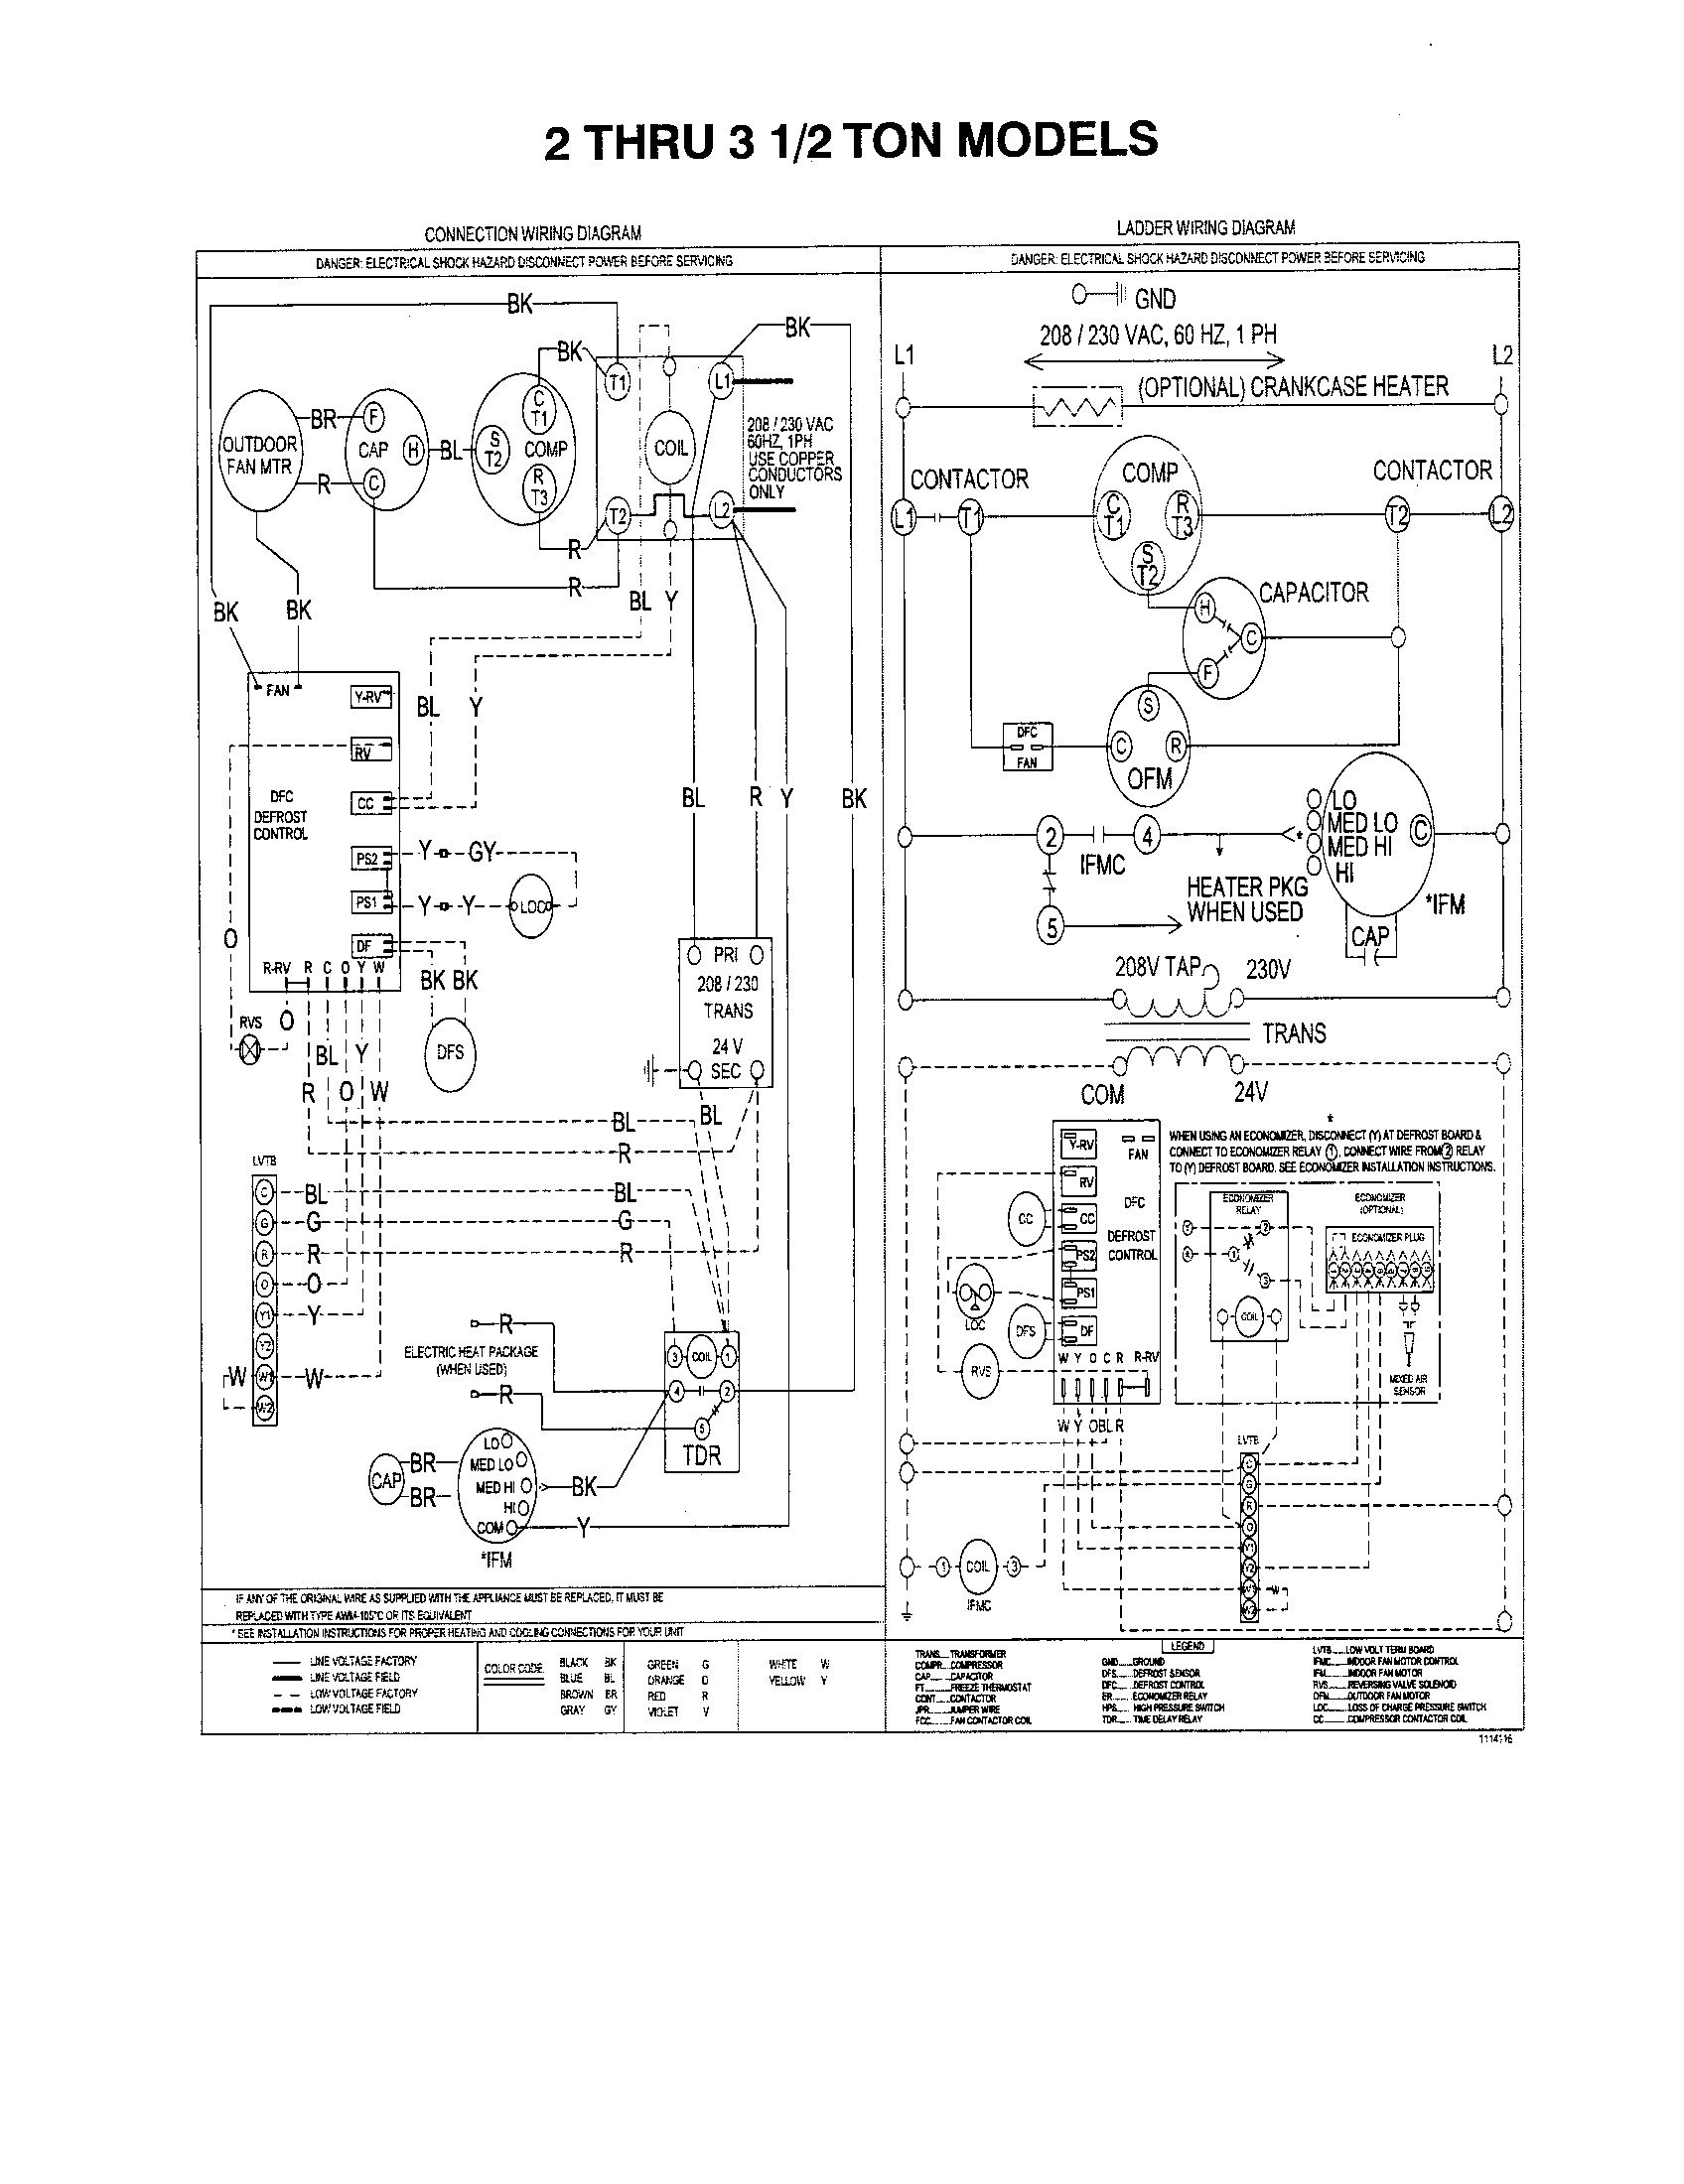 Wiring Diagram 35 York Furnace Wiring Diagram